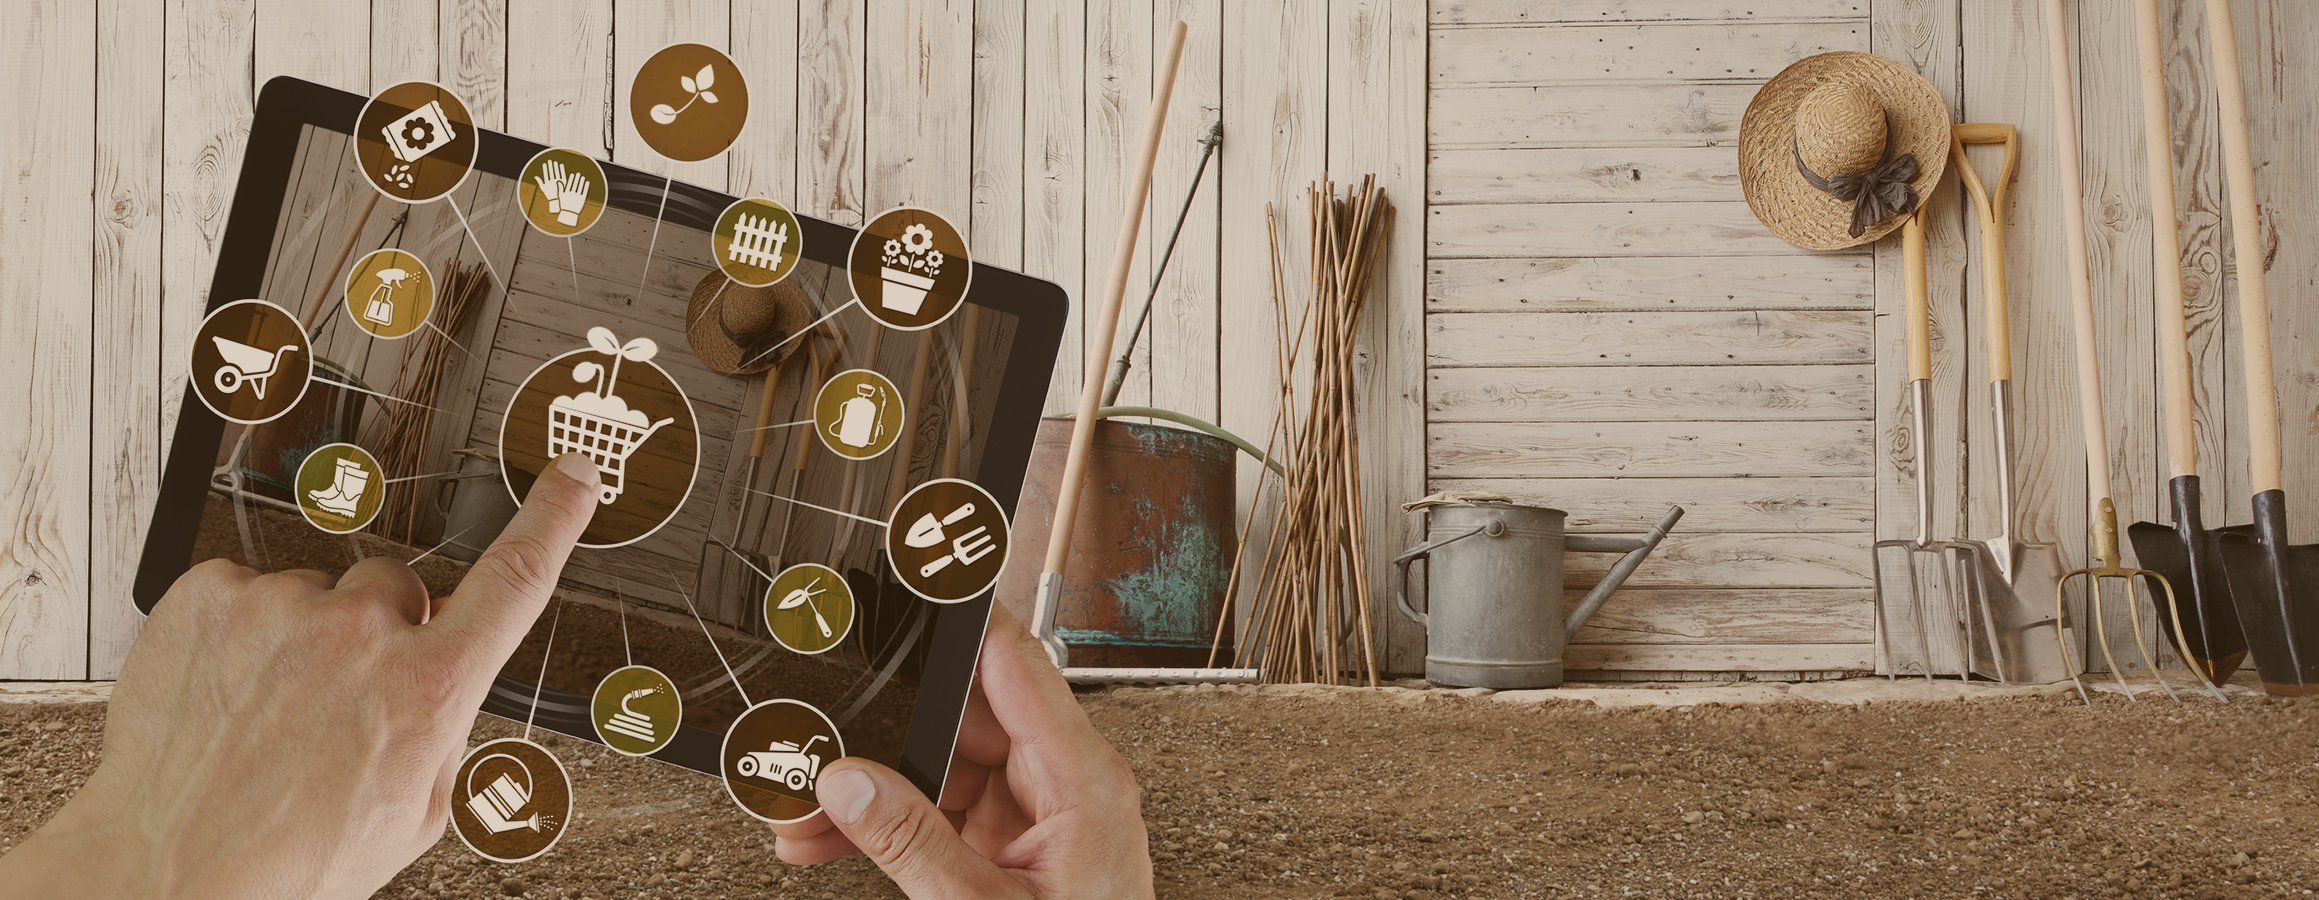 Buying Garden Seeds Online Everything You Need To Know